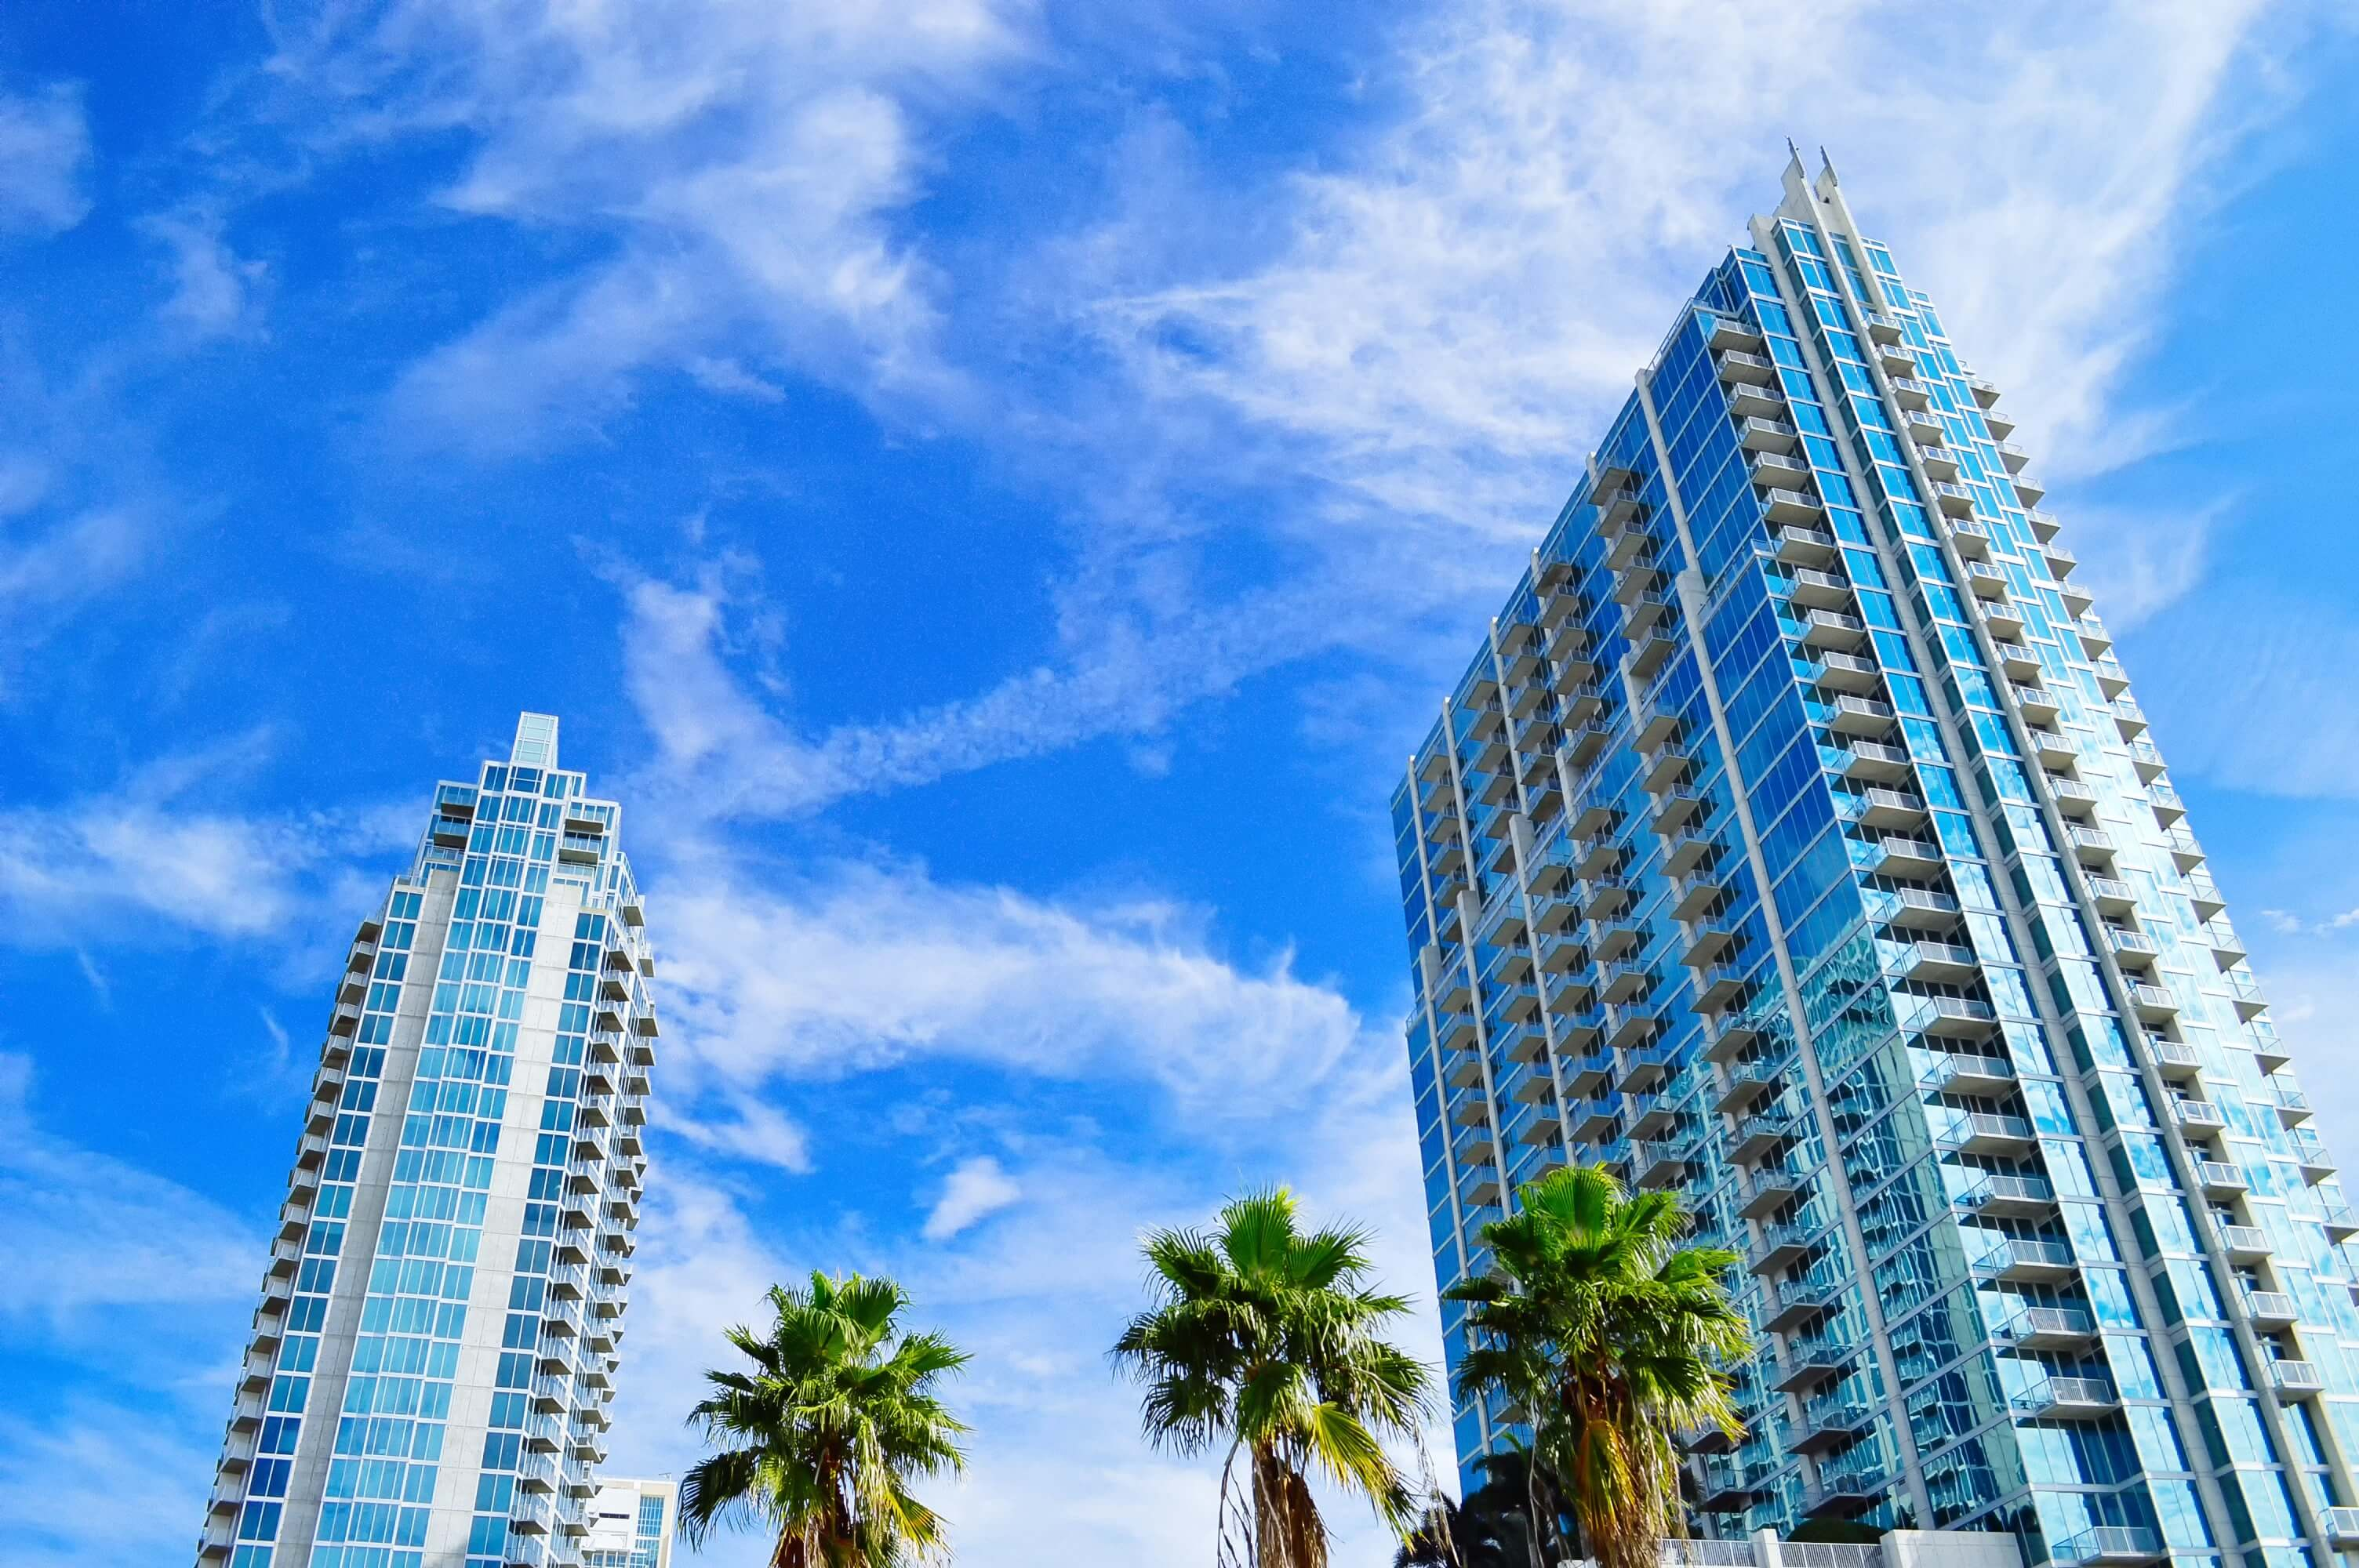 If you are trying to choose between buying a condo or a house, a few factors can help you decide which option suits your family more.